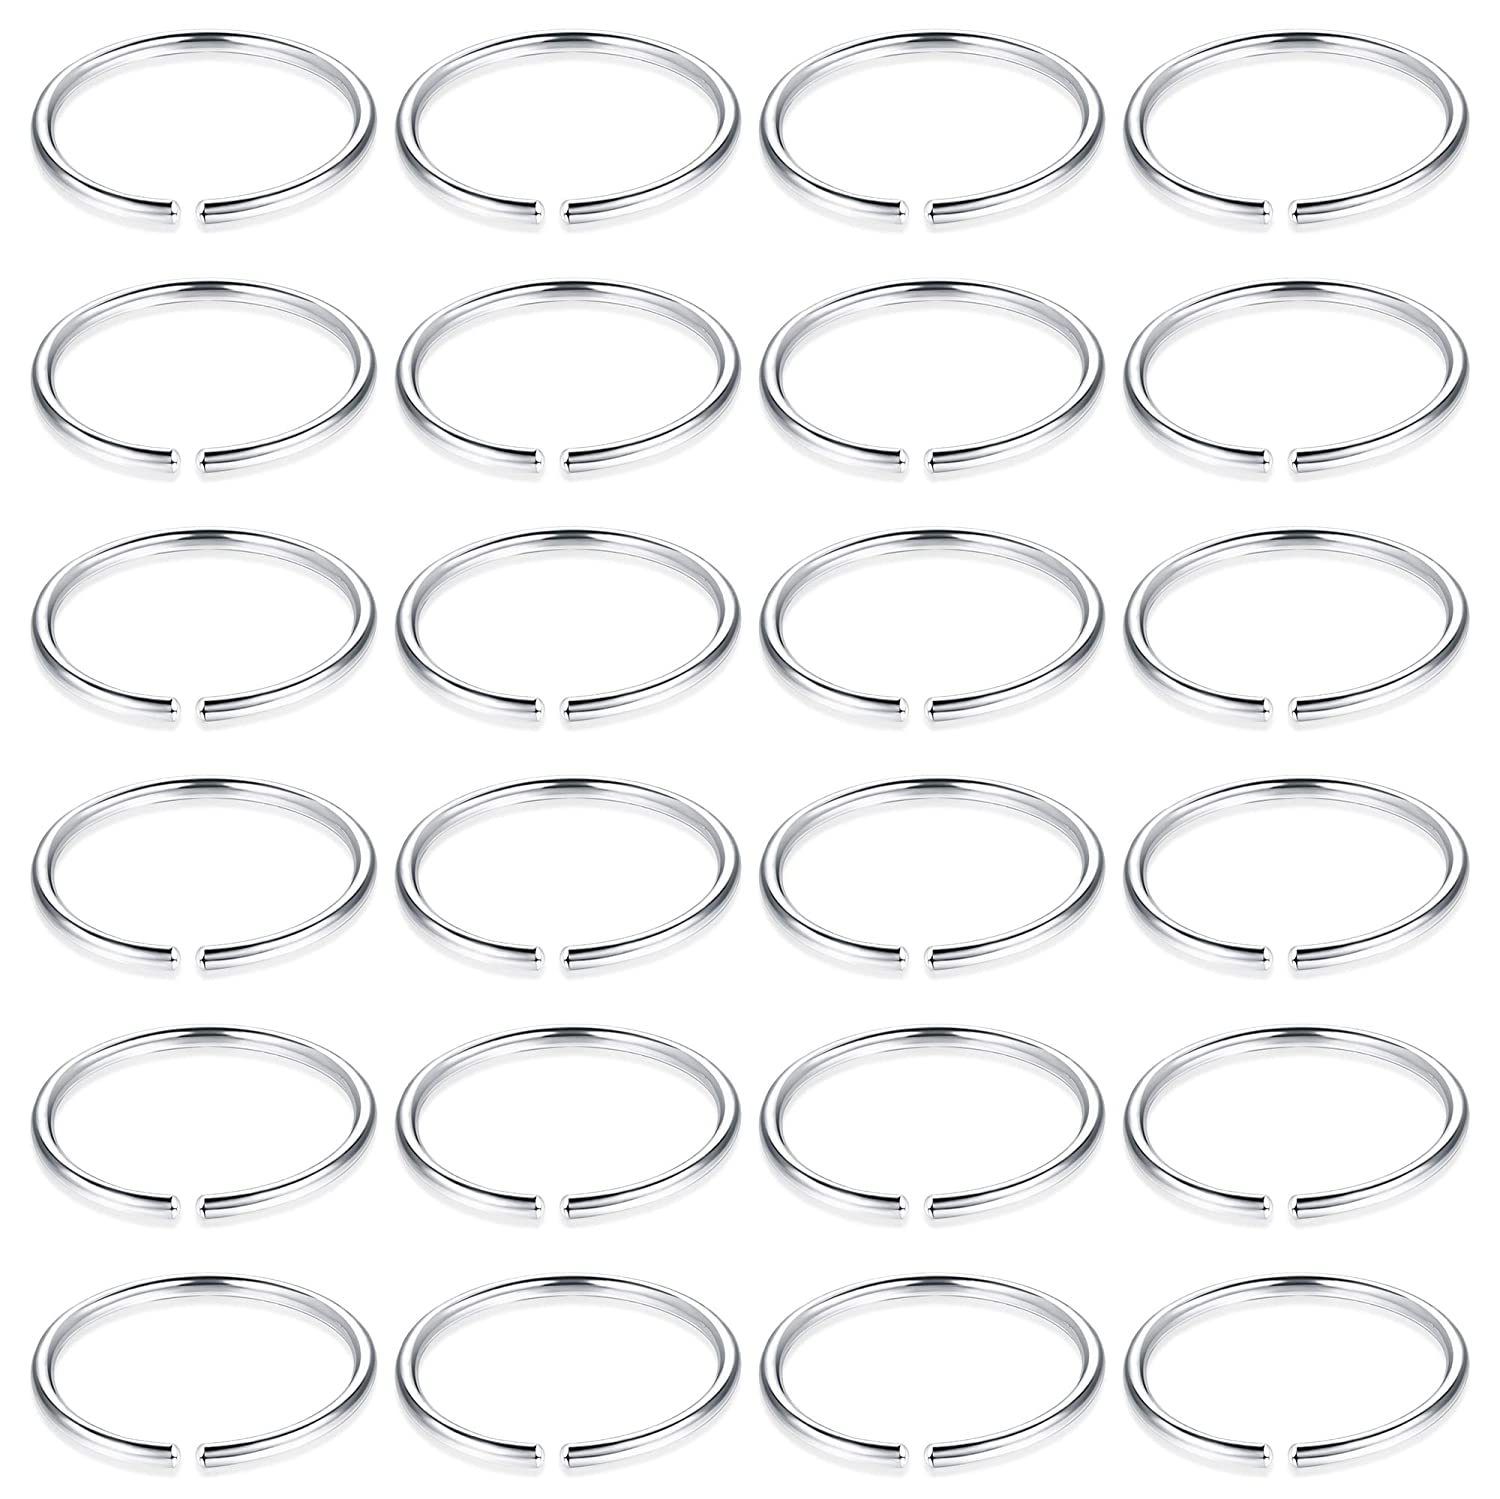 ORAZIO 24PCS 20G Fake Nose Ring Hoop Stainless Steel Nose Lip Cartilage Helix Tragus Ear Hoop Piercing Ring CC56-24C